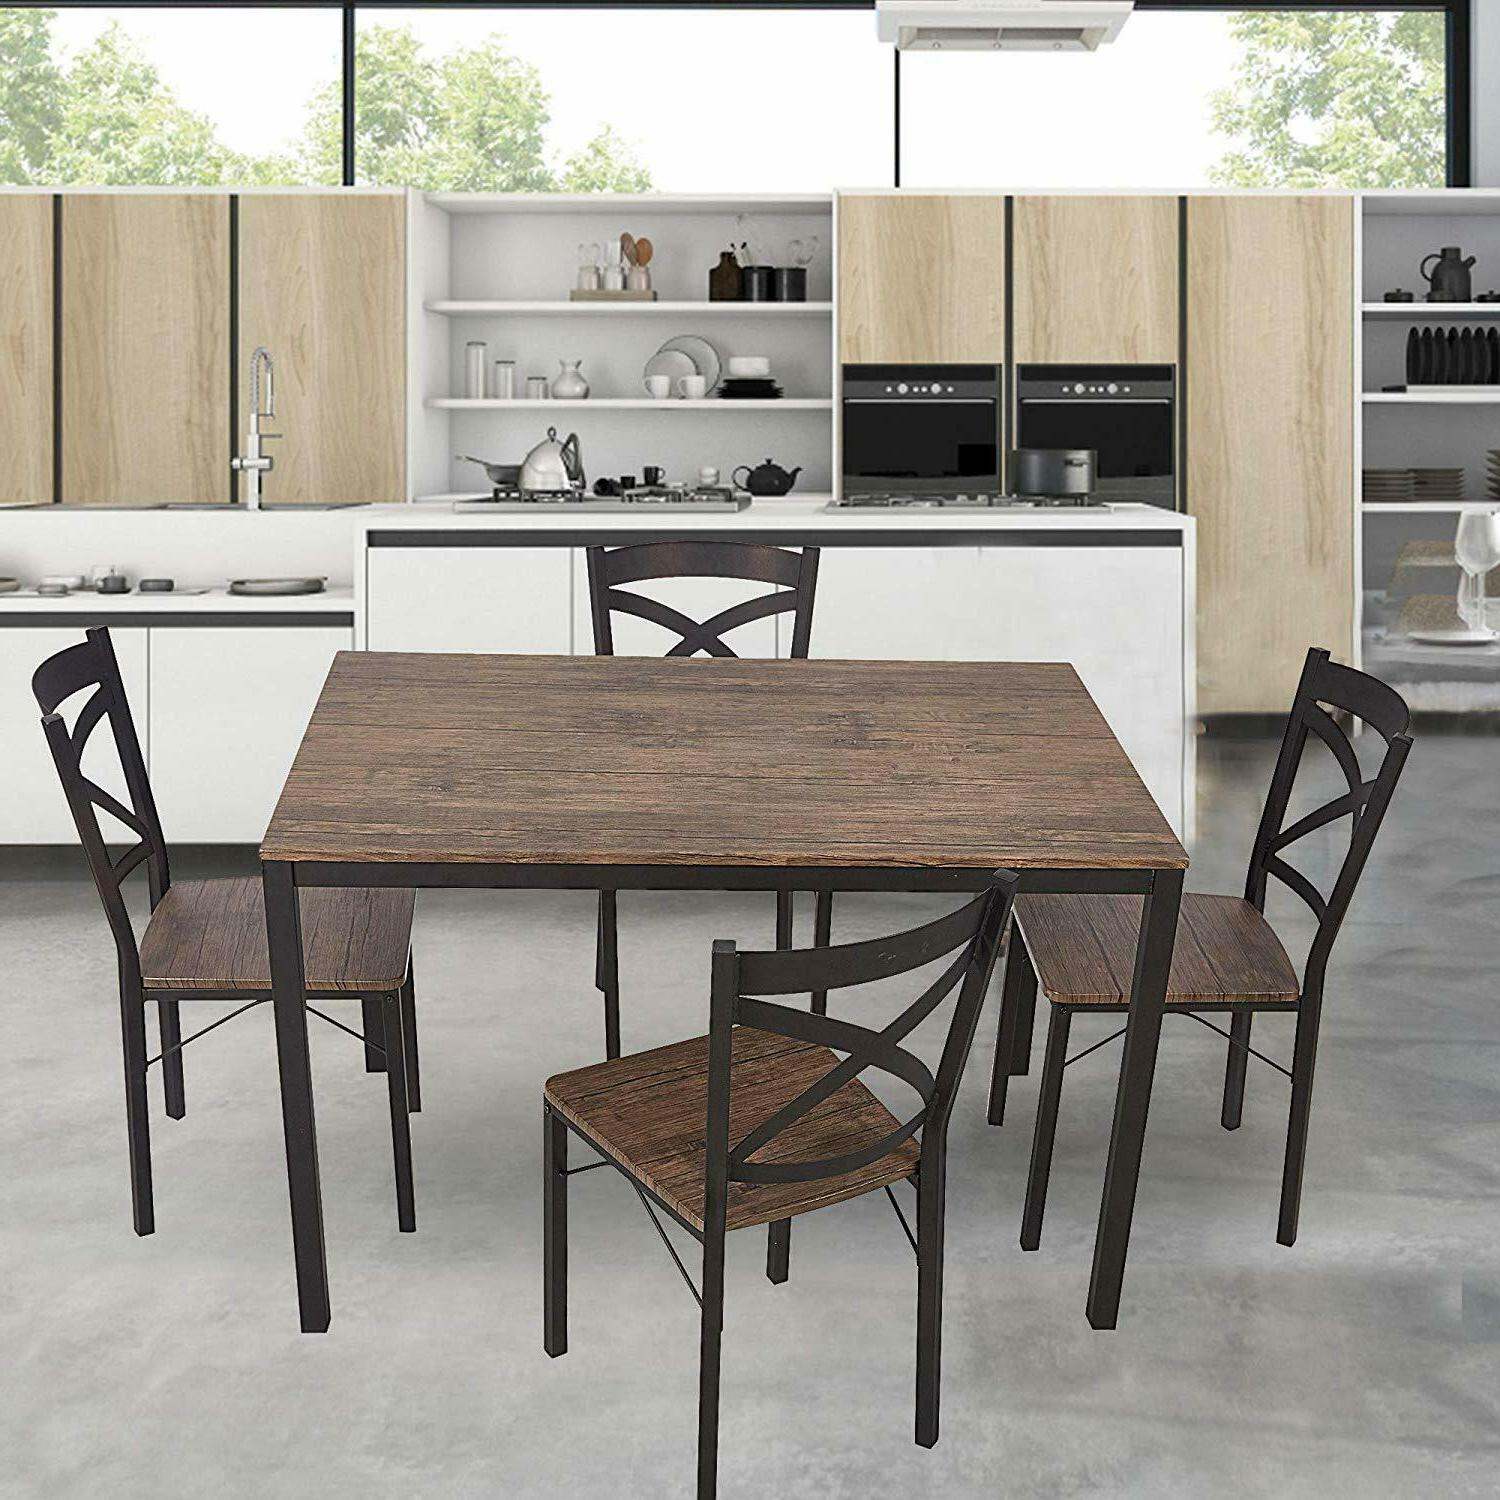 5-piece Dining Table Metal-leg Chairs Kitchen